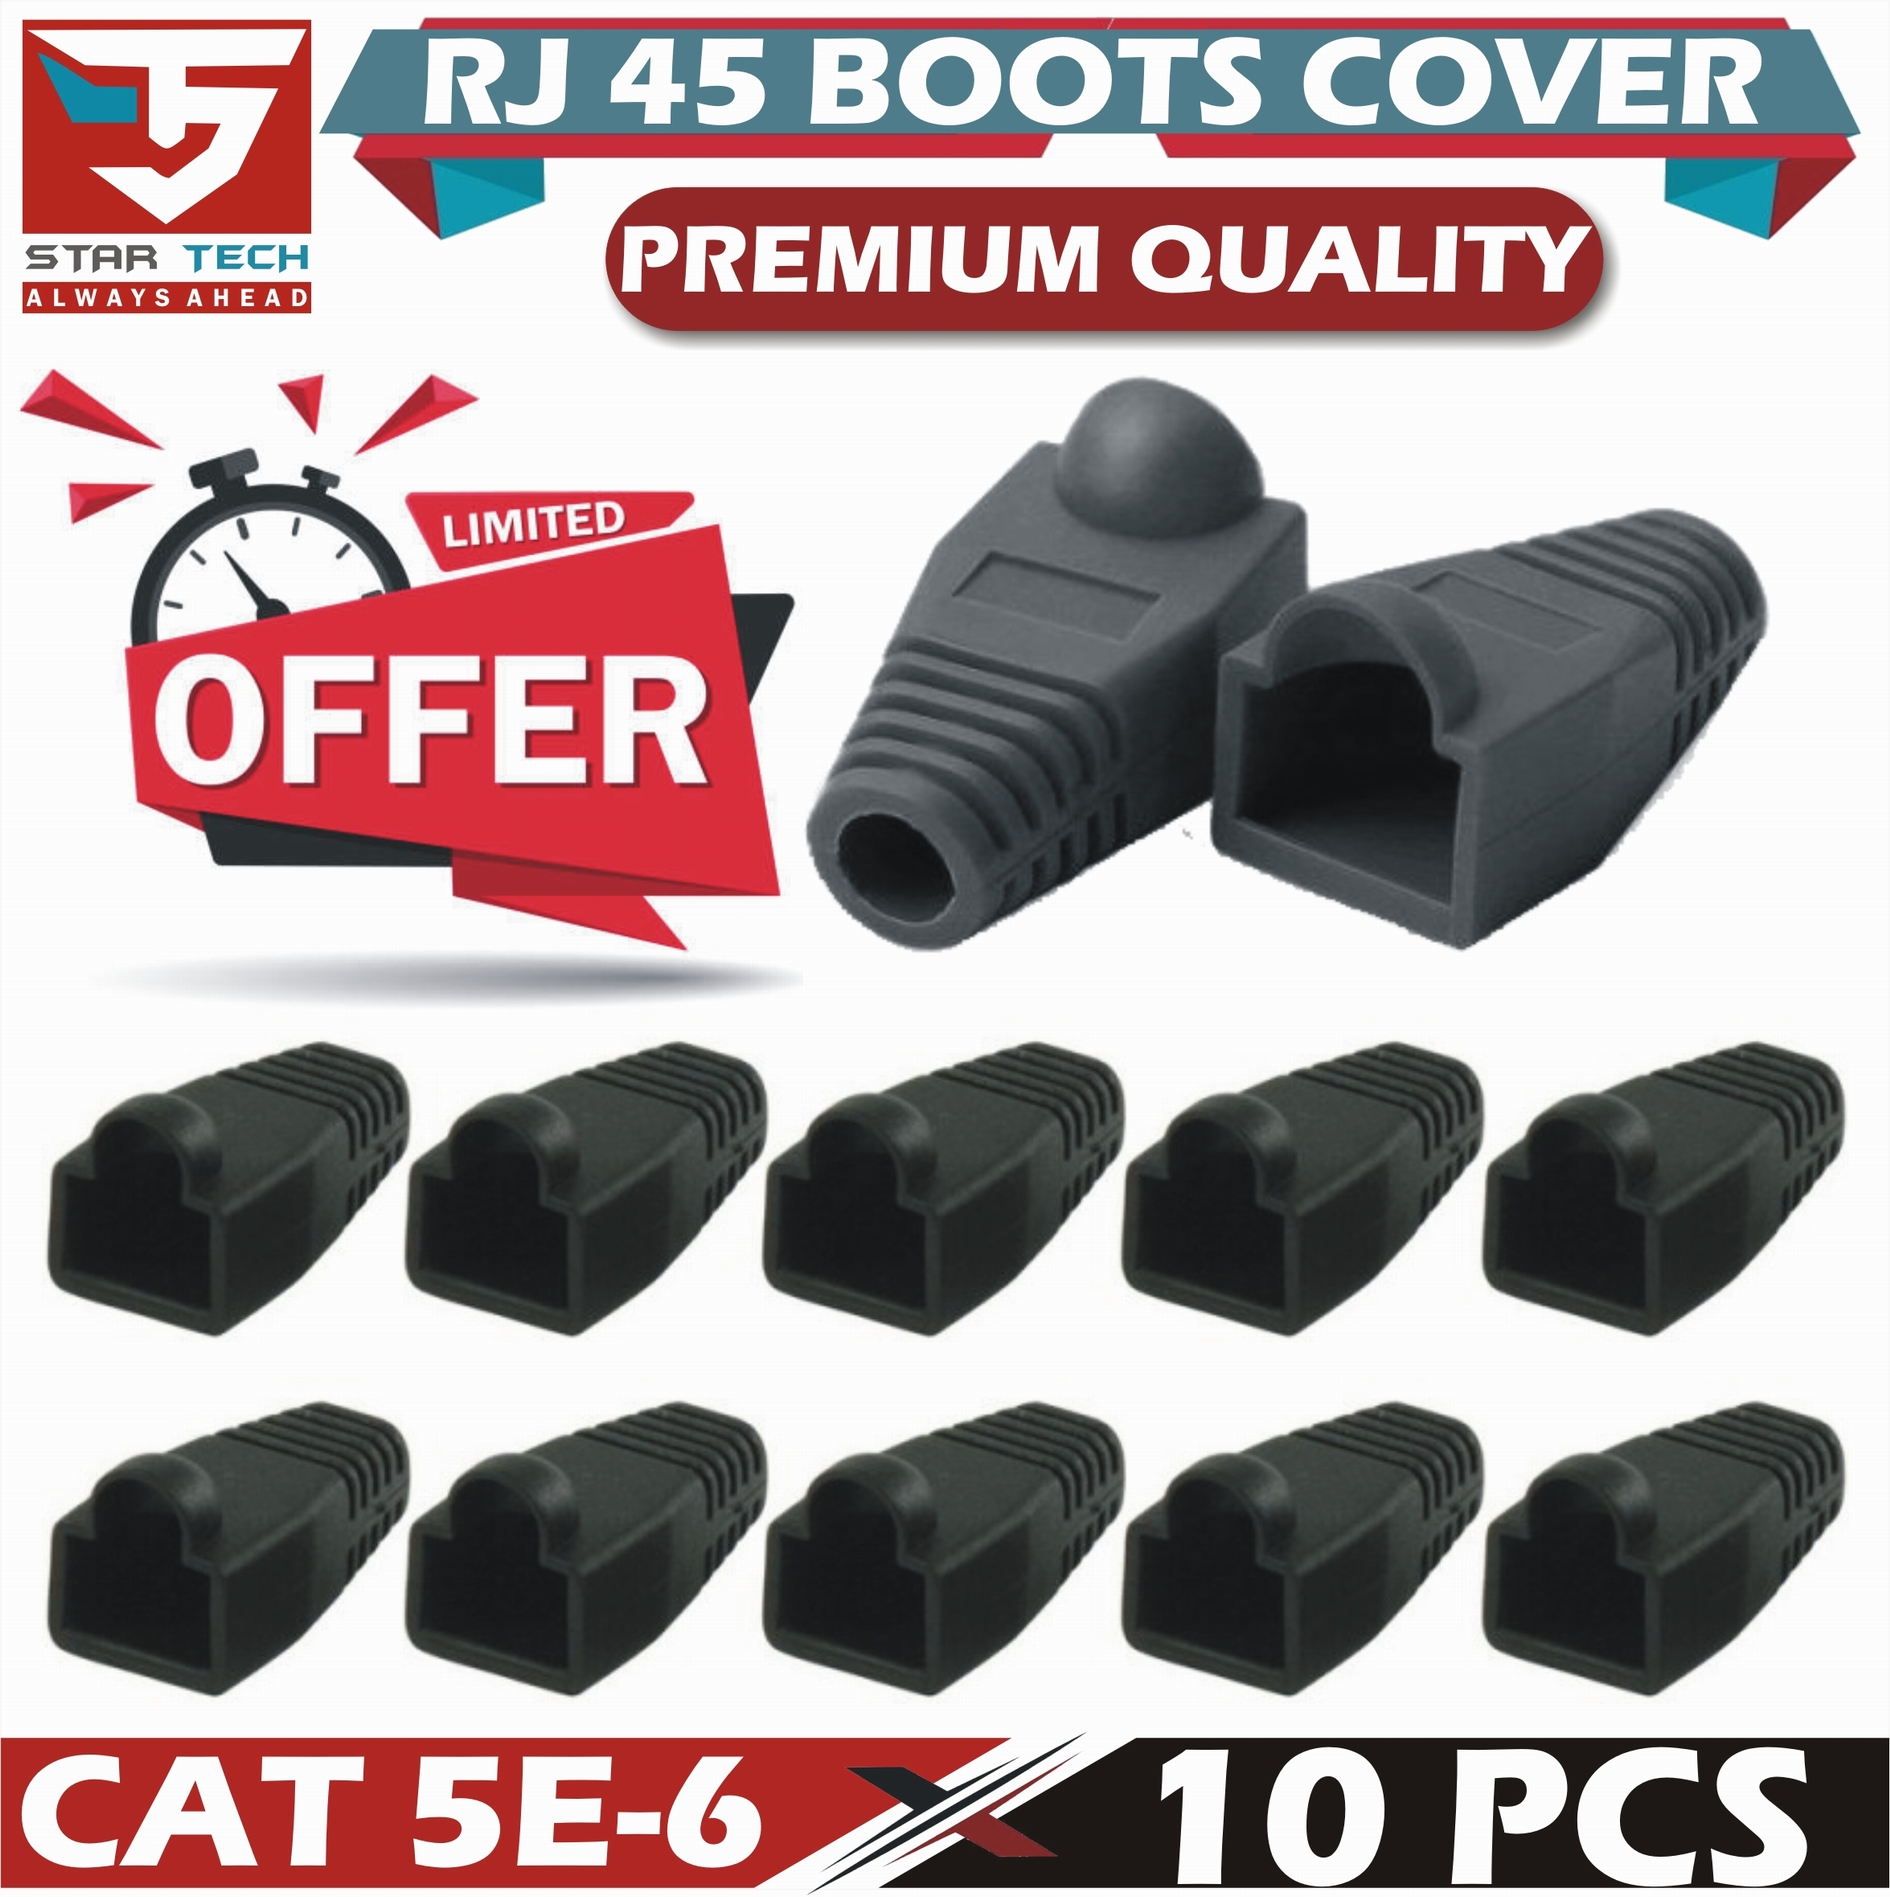 10X RJ45 Connector Strain Relief Rubber Boots Cover Network LAN Ethernet Patch Cable Plug Caps